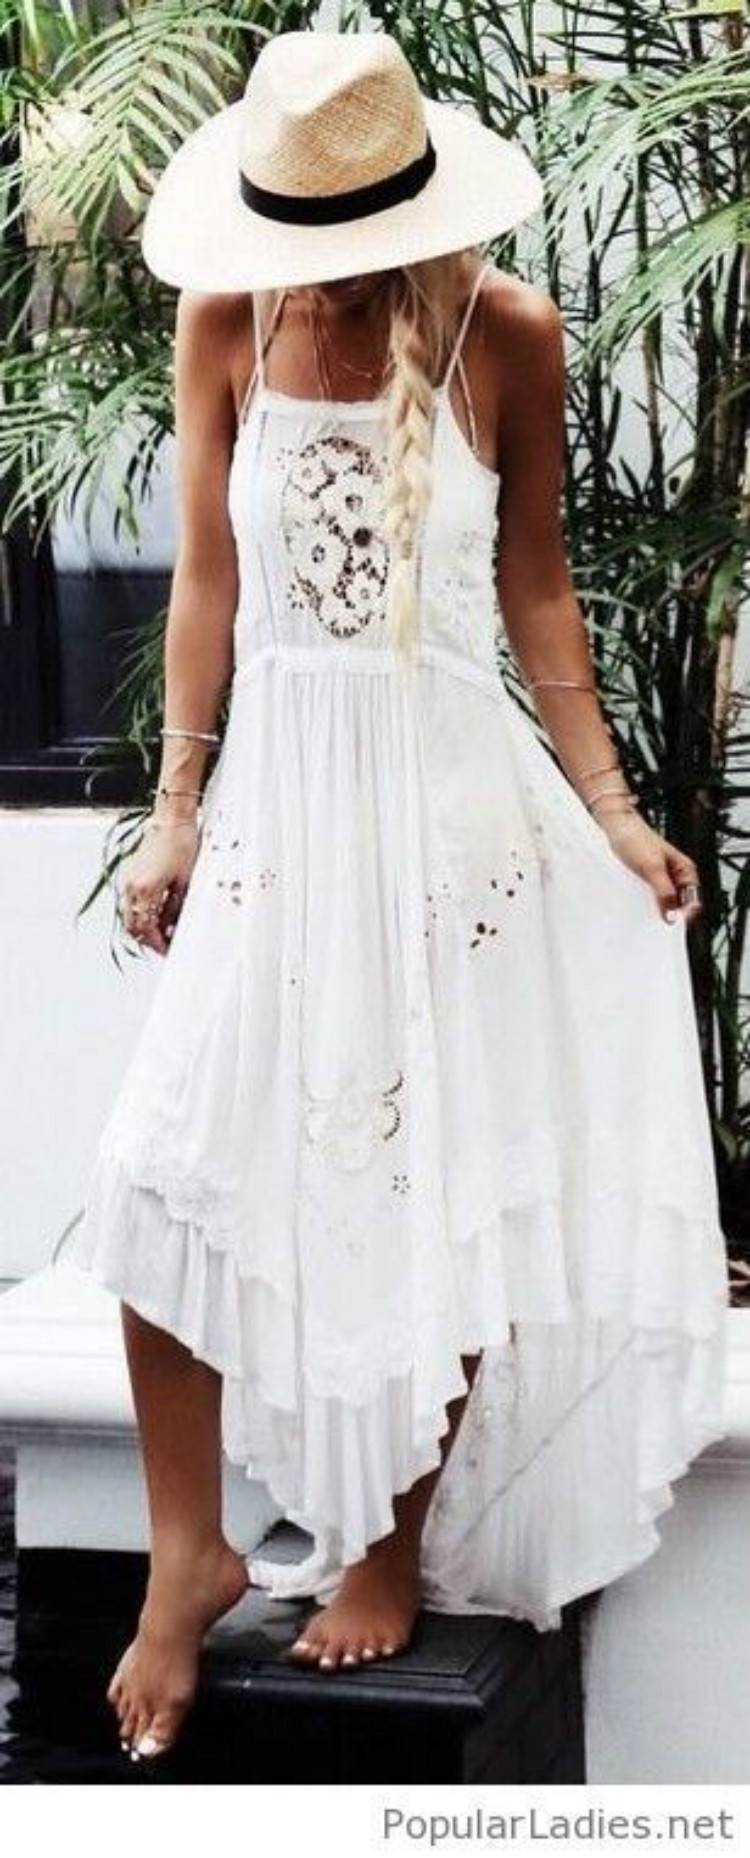 Stunning And Sexy Beach Outfits For Your Summer Holiday; Summer Dress; Beach Outfits; Beach Dress; Hot Shorts; Linen Pants; Boho Dress; Beach Boho Dress; Sexy Outfits; Summer Outfits #summeroutfits #beachdress #beachoutfits #hotpants #linenpants #bohodress #beachbohodress #sexydress #sexyoutfits